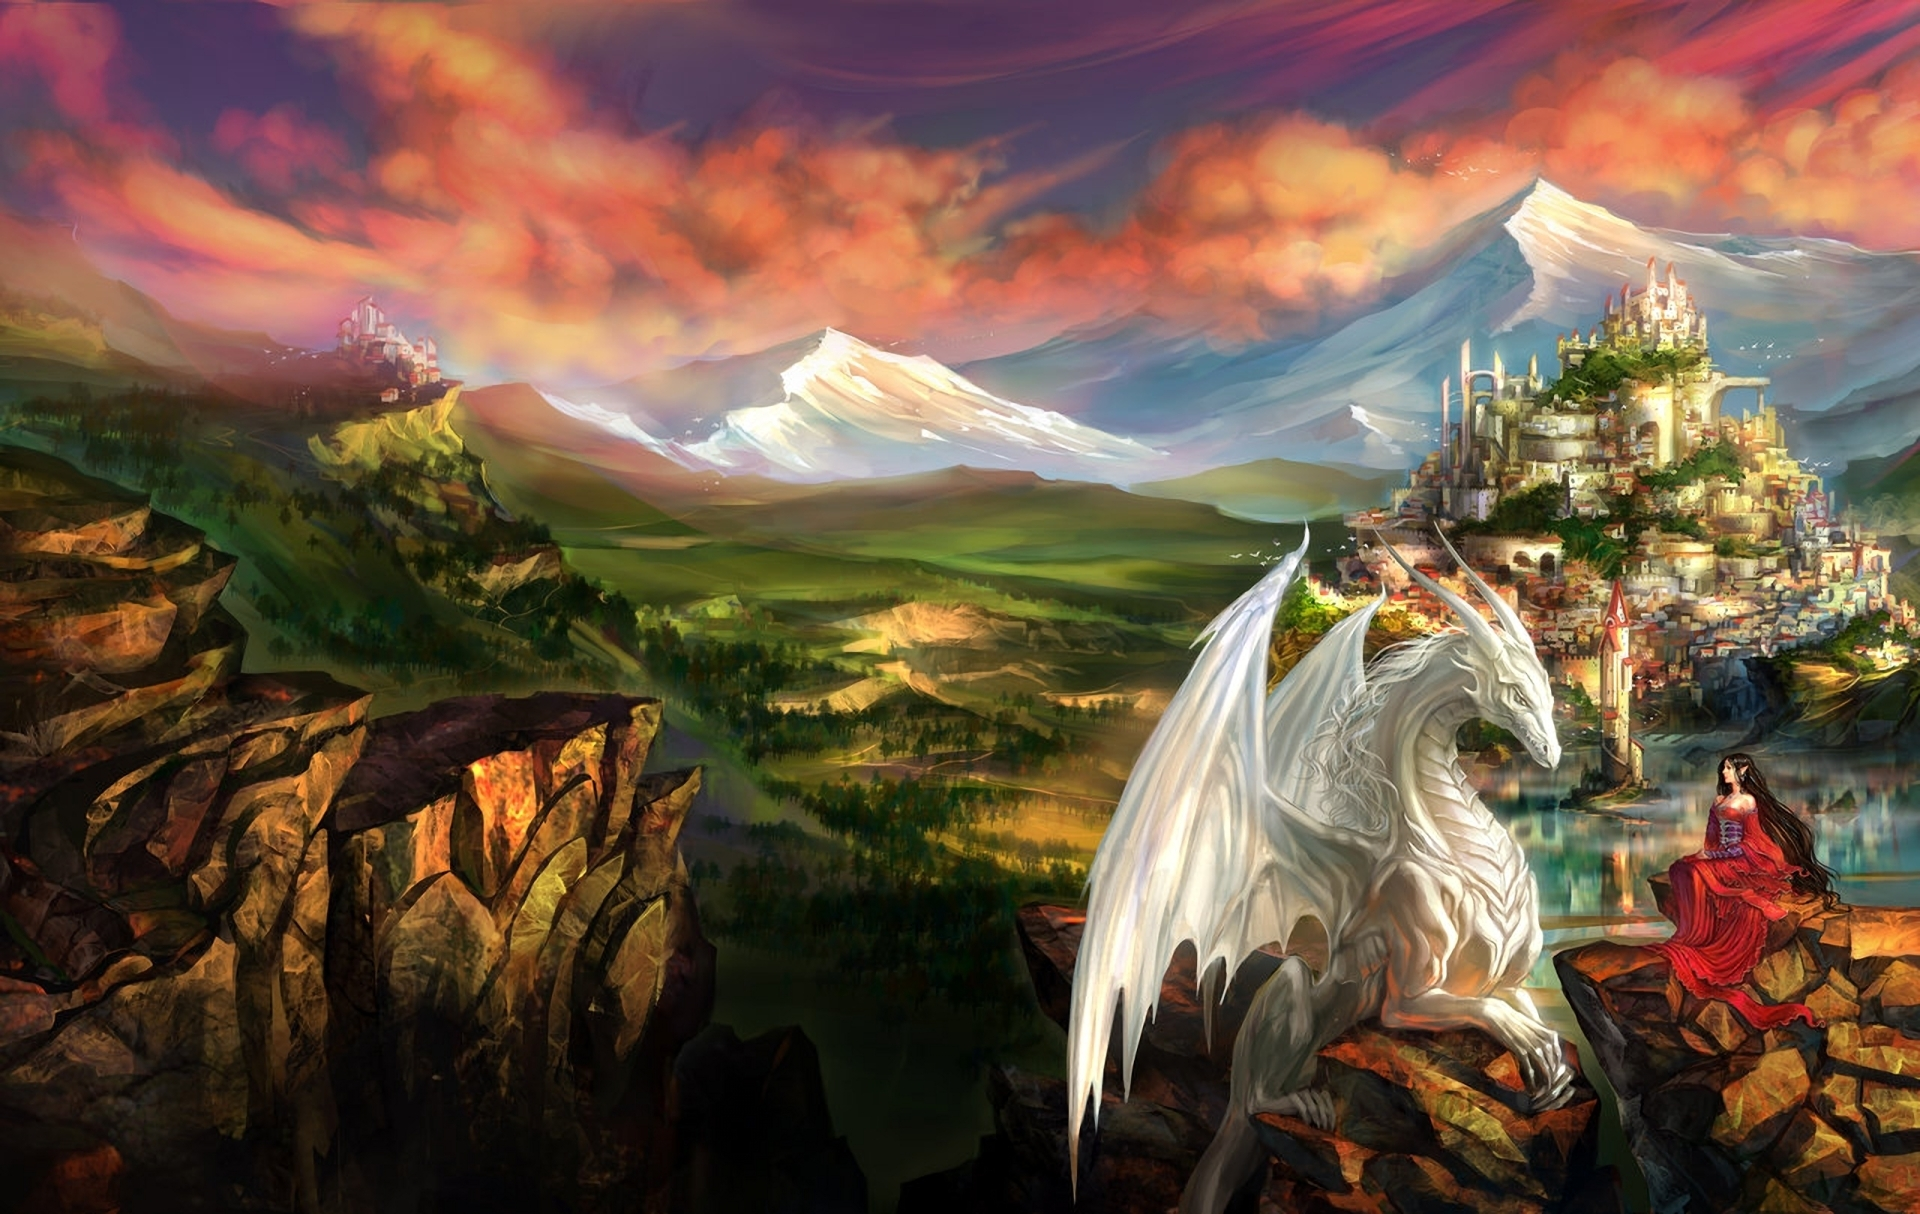 Fantasy World Art Dragon Silva Hd Wallpaper Background Image 1920x1214 Id